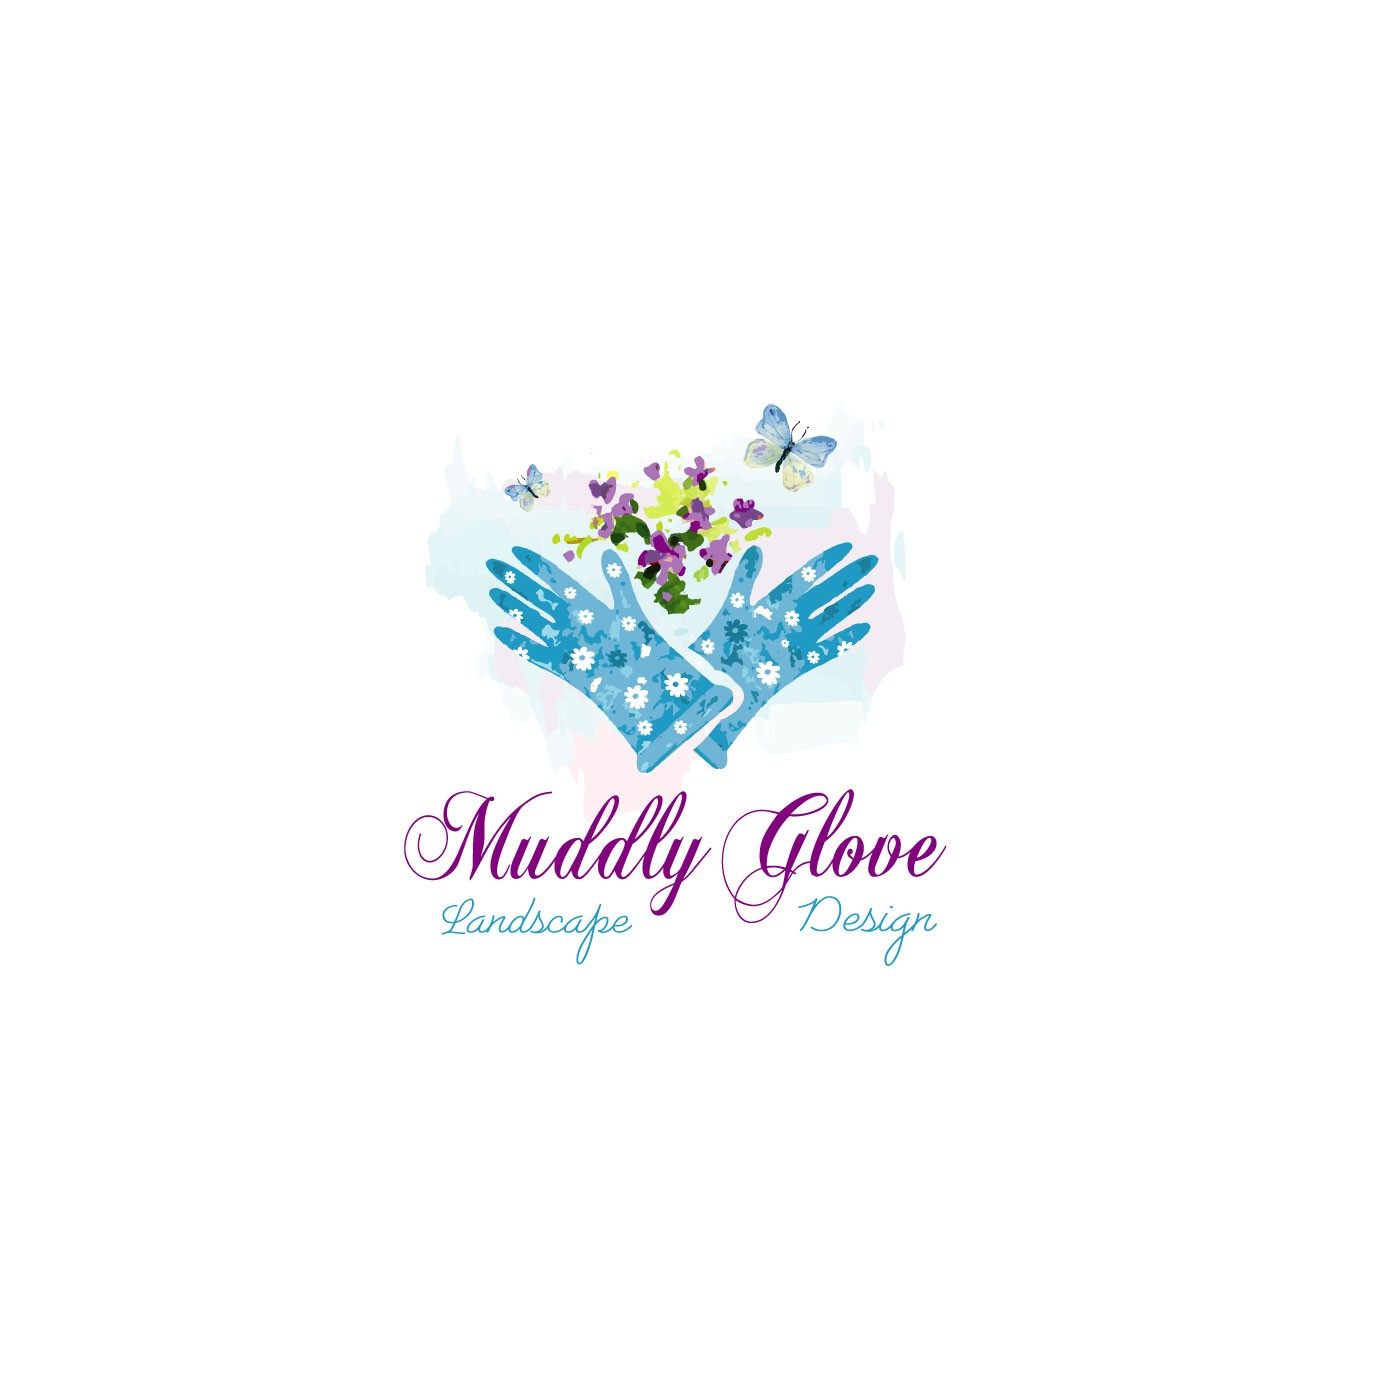 cool name... Muddy Glove Landscape Design... how about a cool and beautiful logo to go with it?